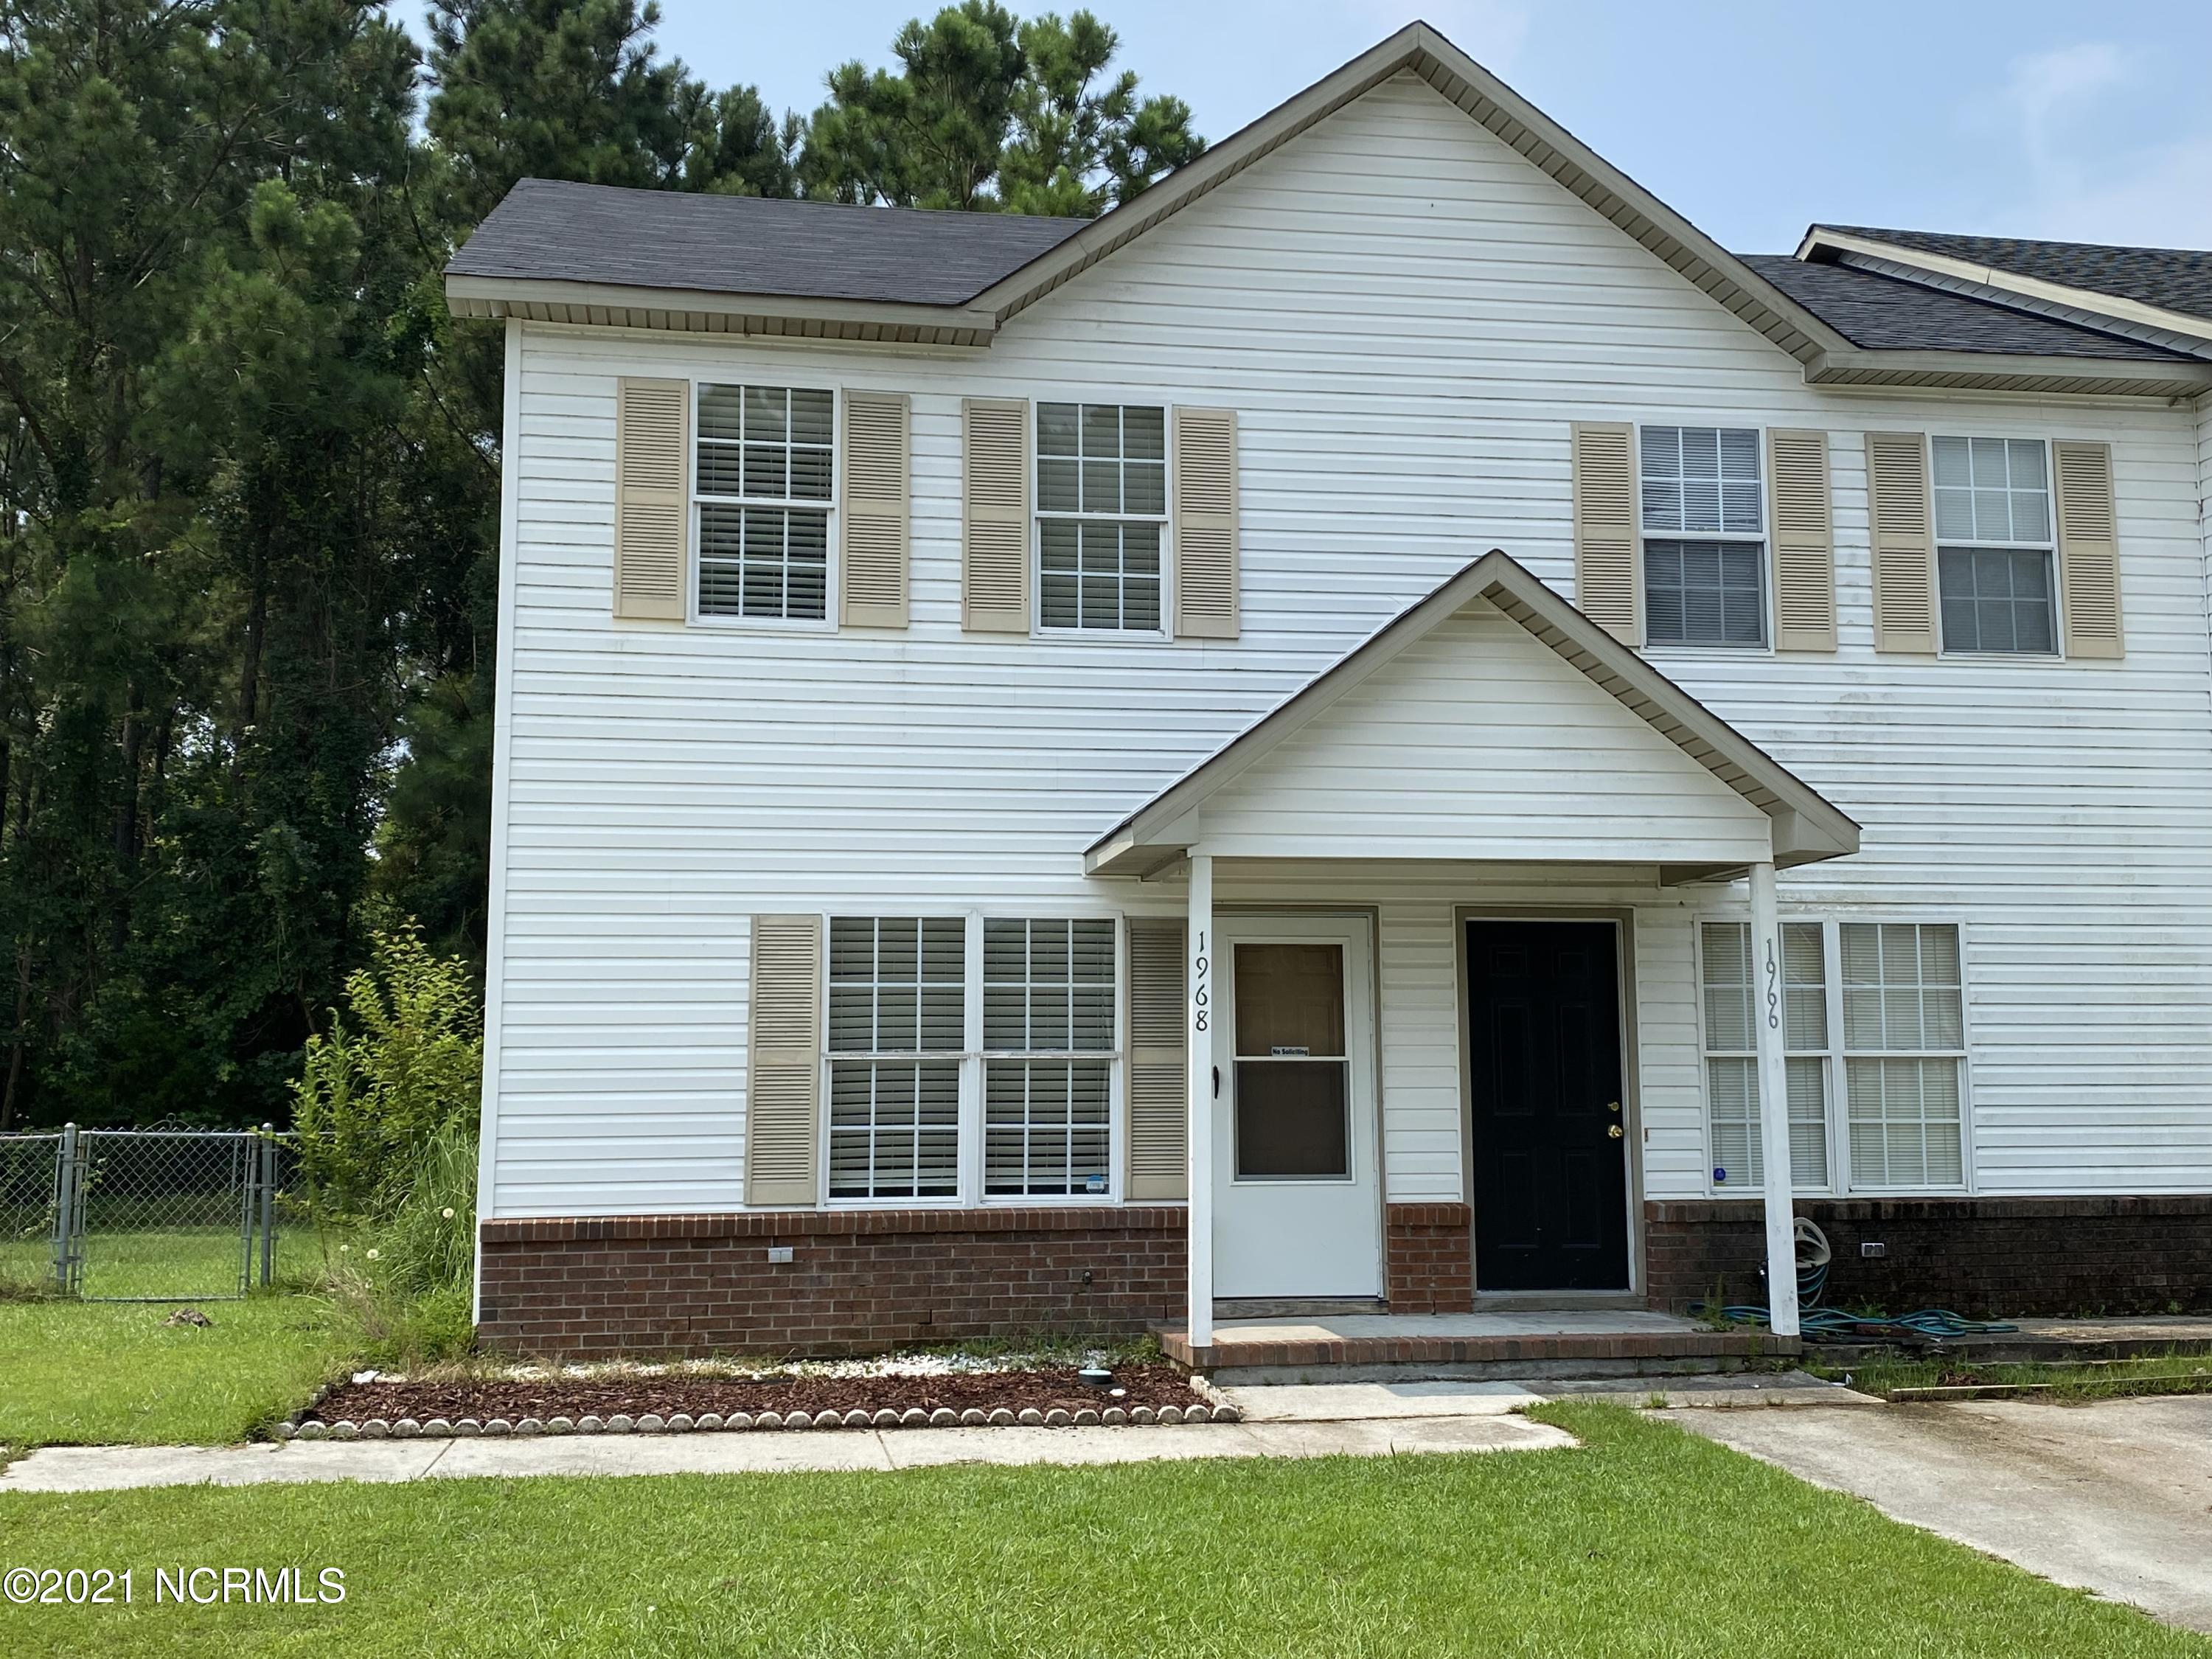 An end unit townhome with an large fenced lot! This 2 bedroom home is sure to please. It is located close to the bases, schools, shopping, churches and only a short drive to the beach. Don't delay or this one will get away!